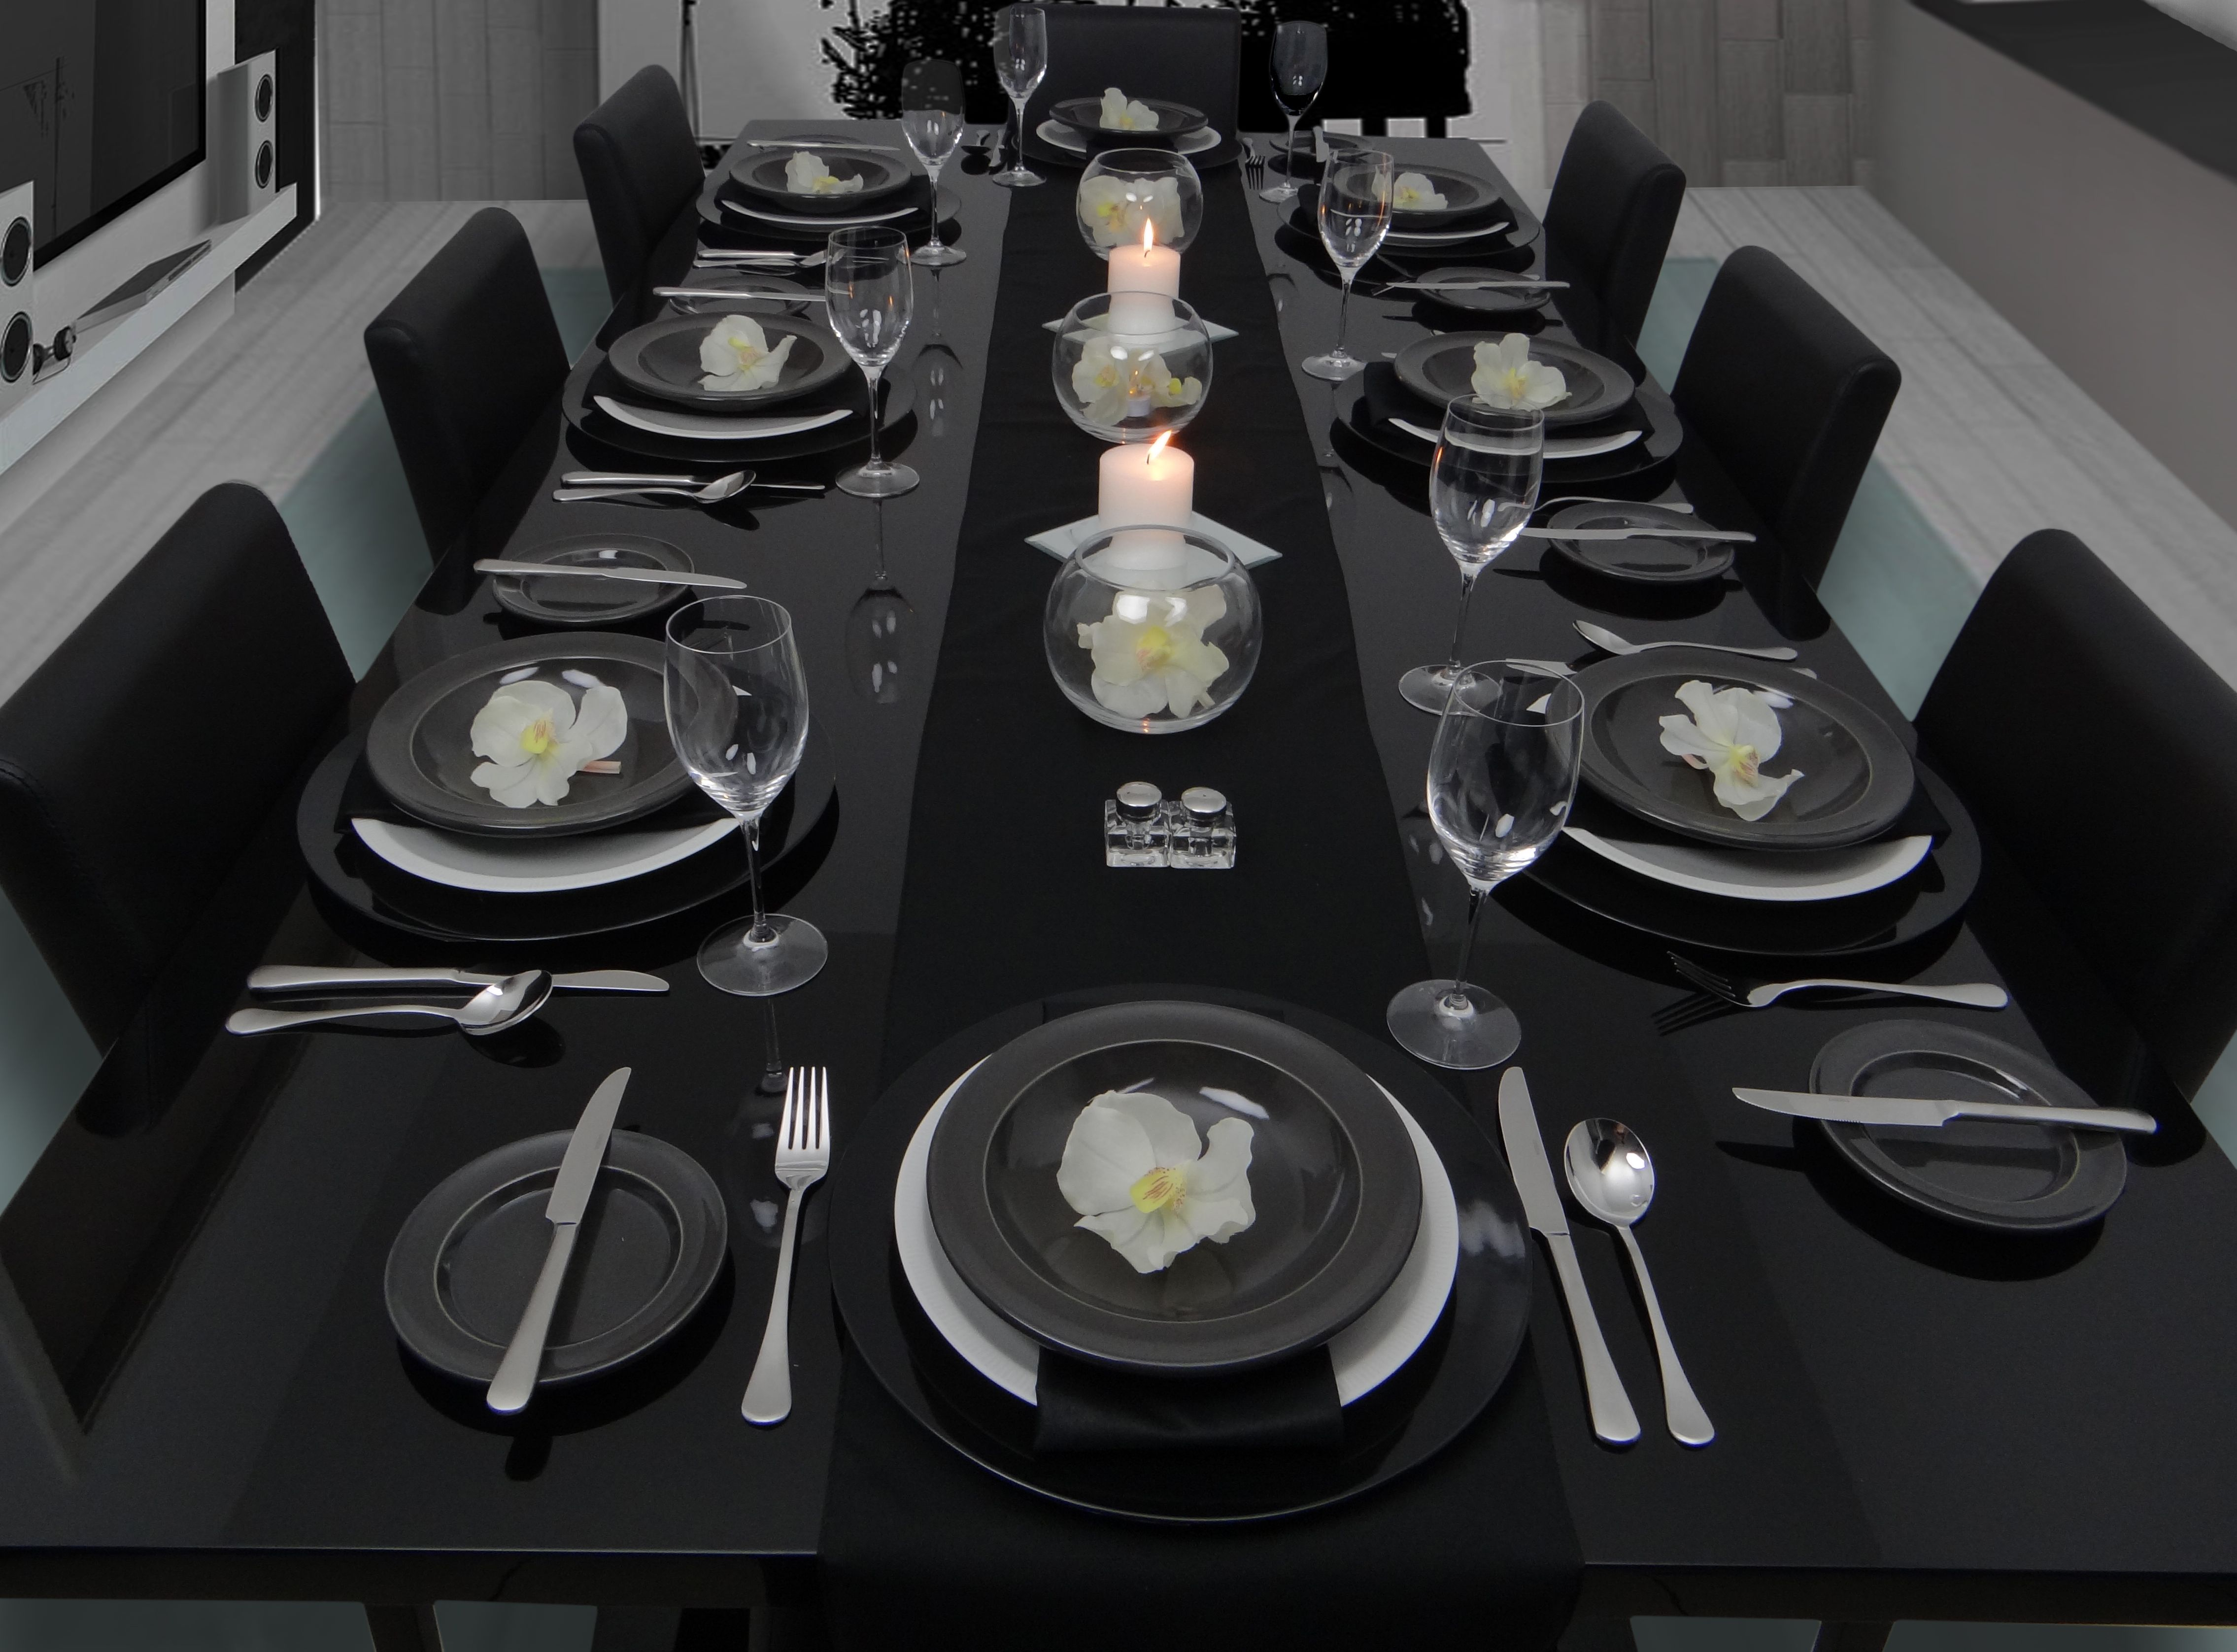 Vanda Orchids bring class and elegance to this table setting ...